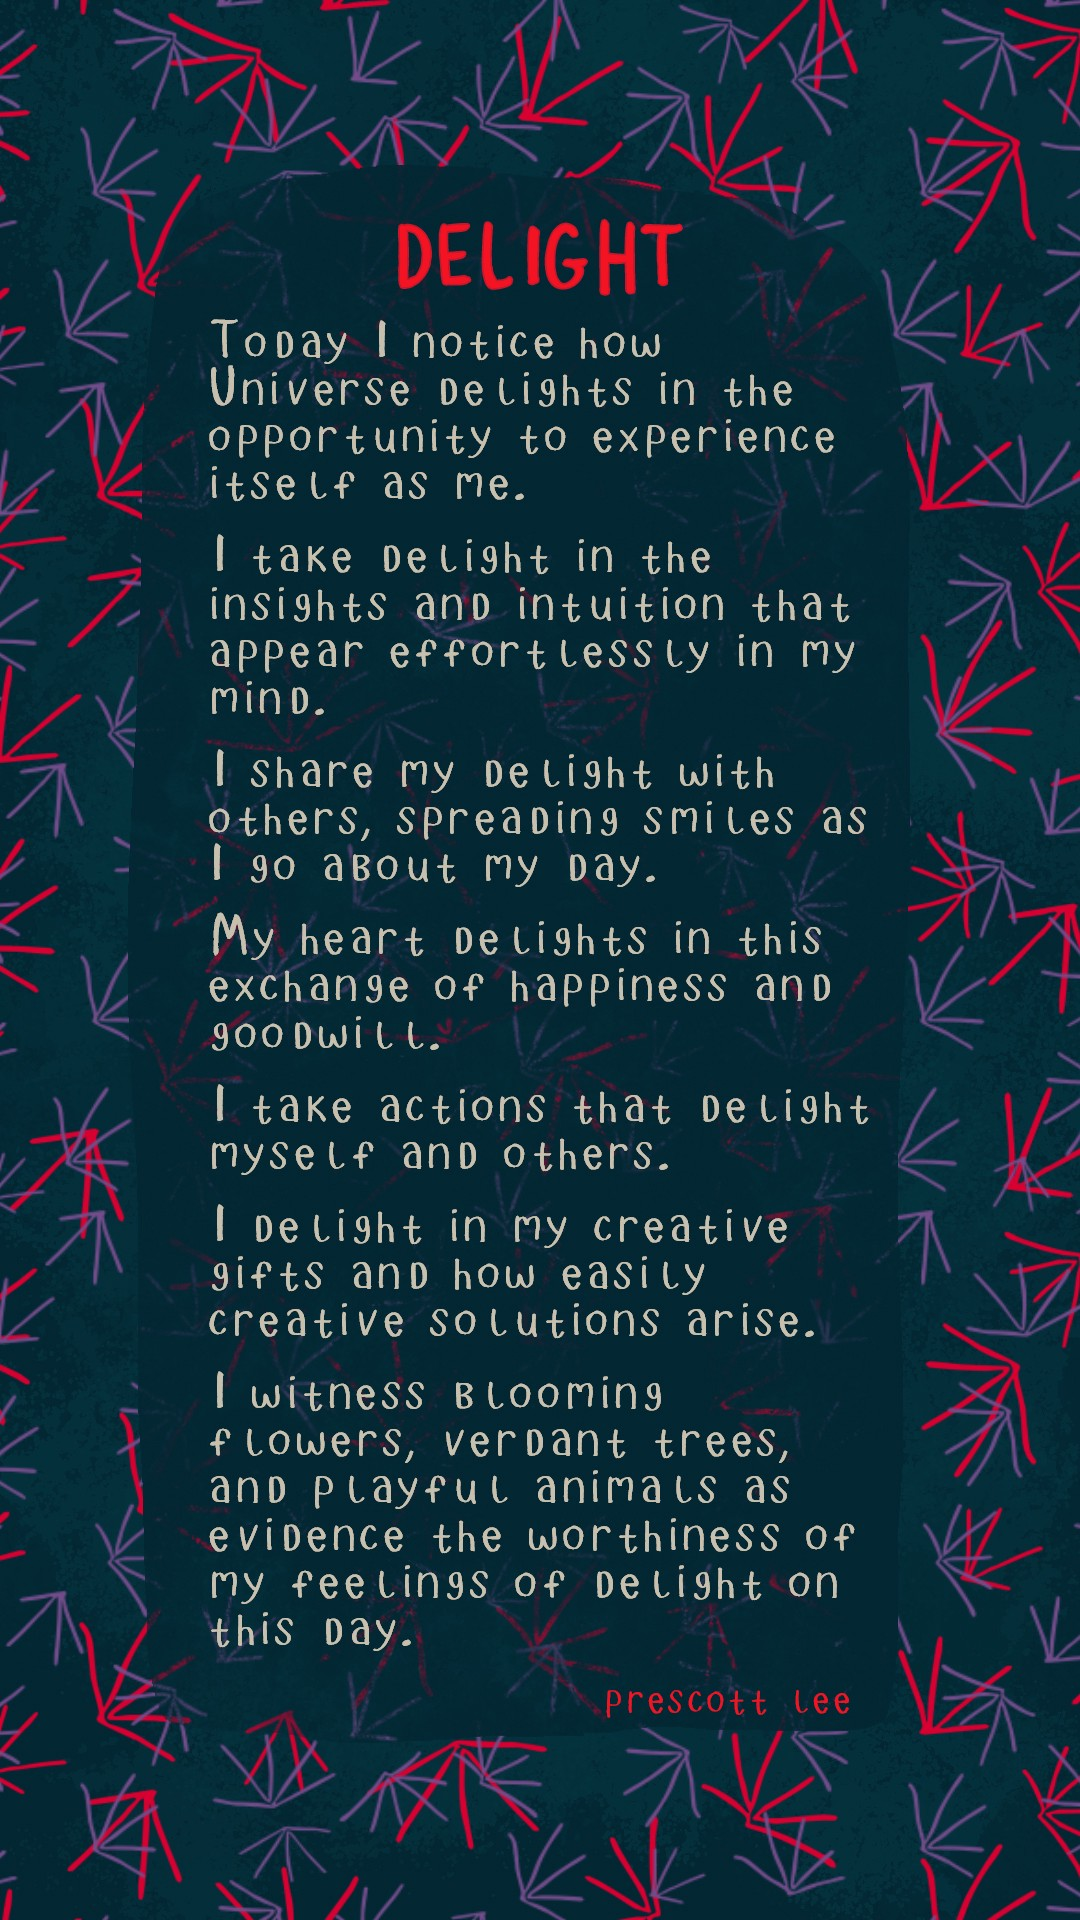 Image of affirmations below on patterned background.